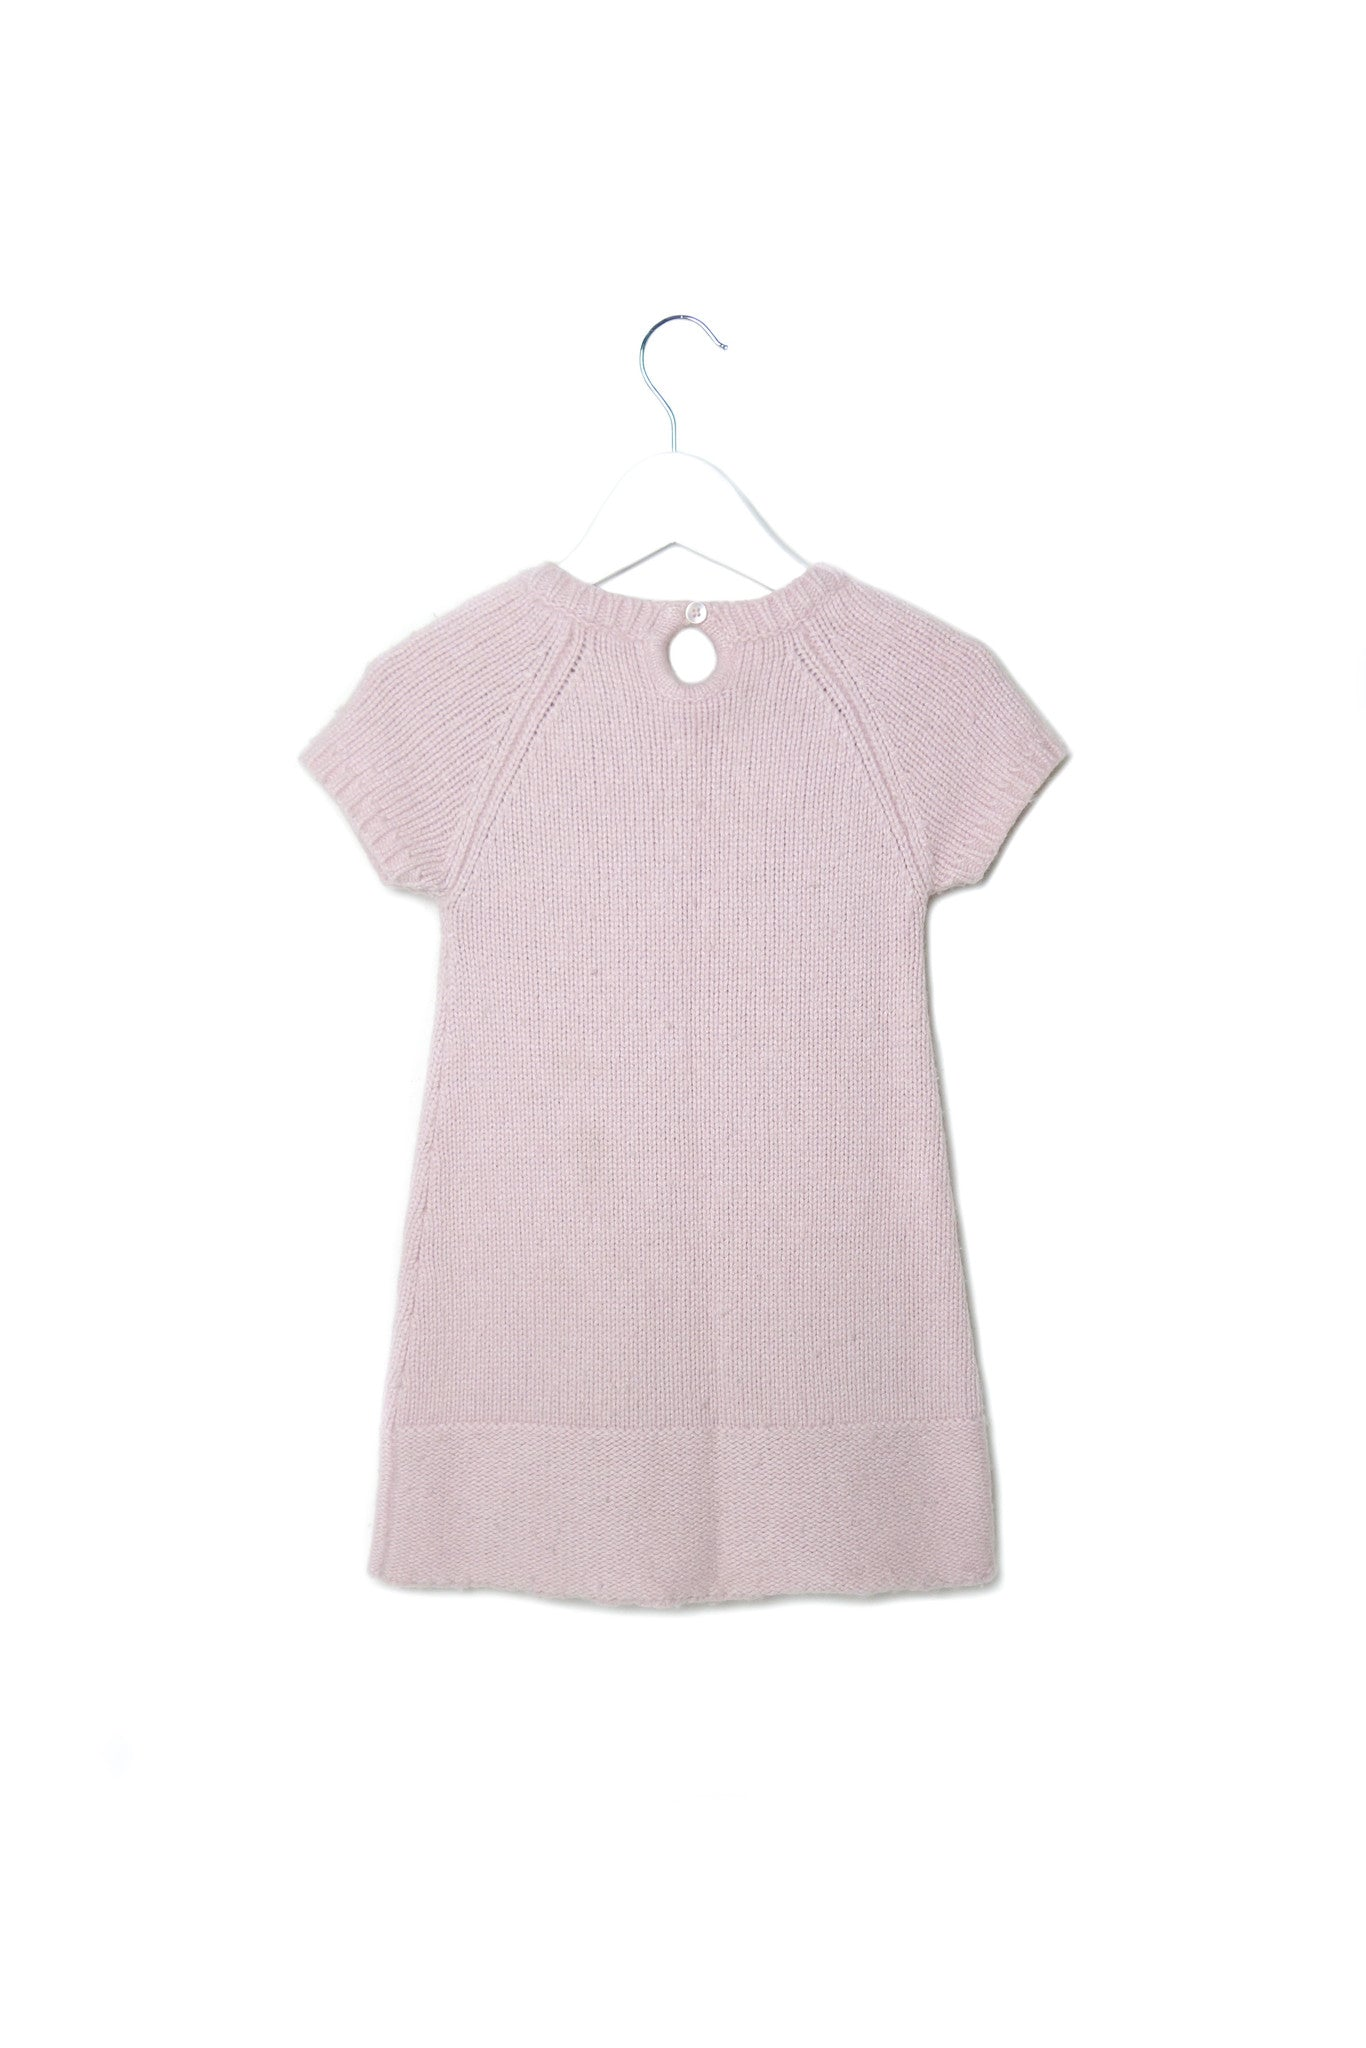 10001920 The Little White Company Kids~Knit Dress 3-4T at Retykle